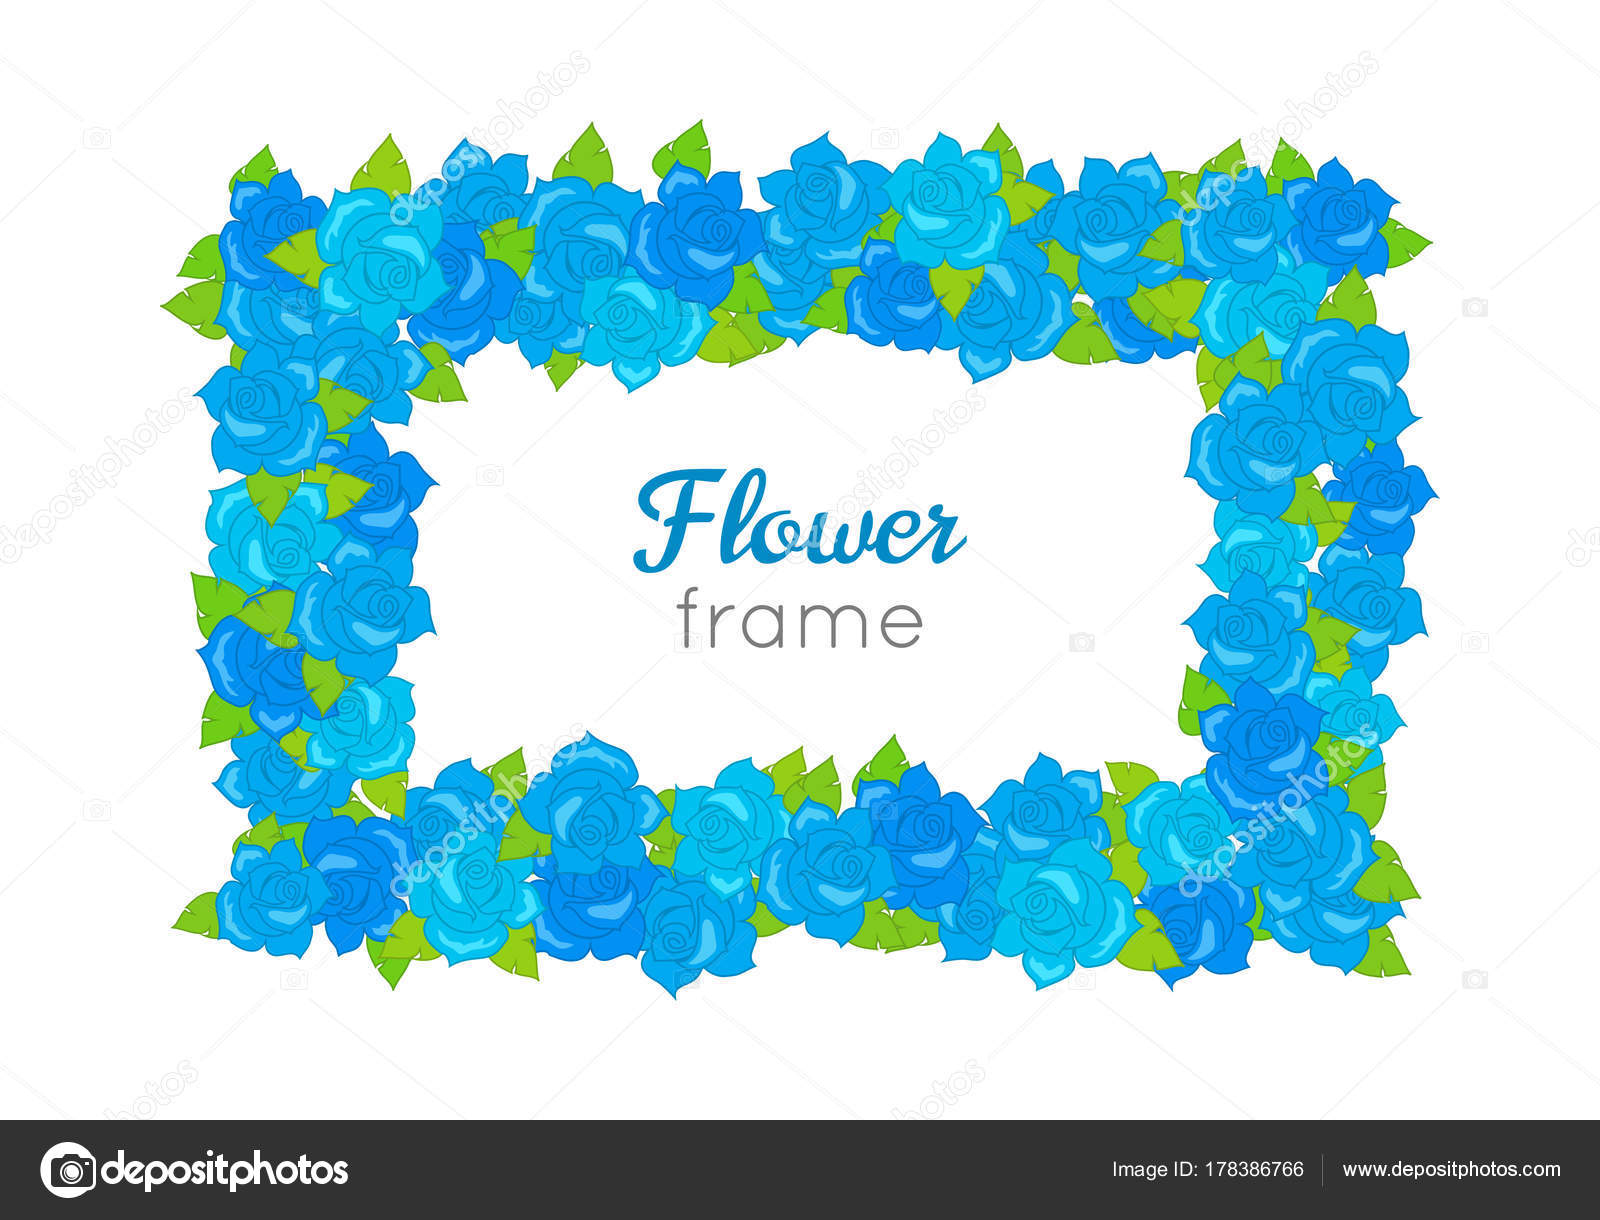 9d912bc916 Flower frame. Rectangular wreath of different blossoms. Leaves. Colourful  selection of flowers on white. Blue purple yellow red roses. Decoration.